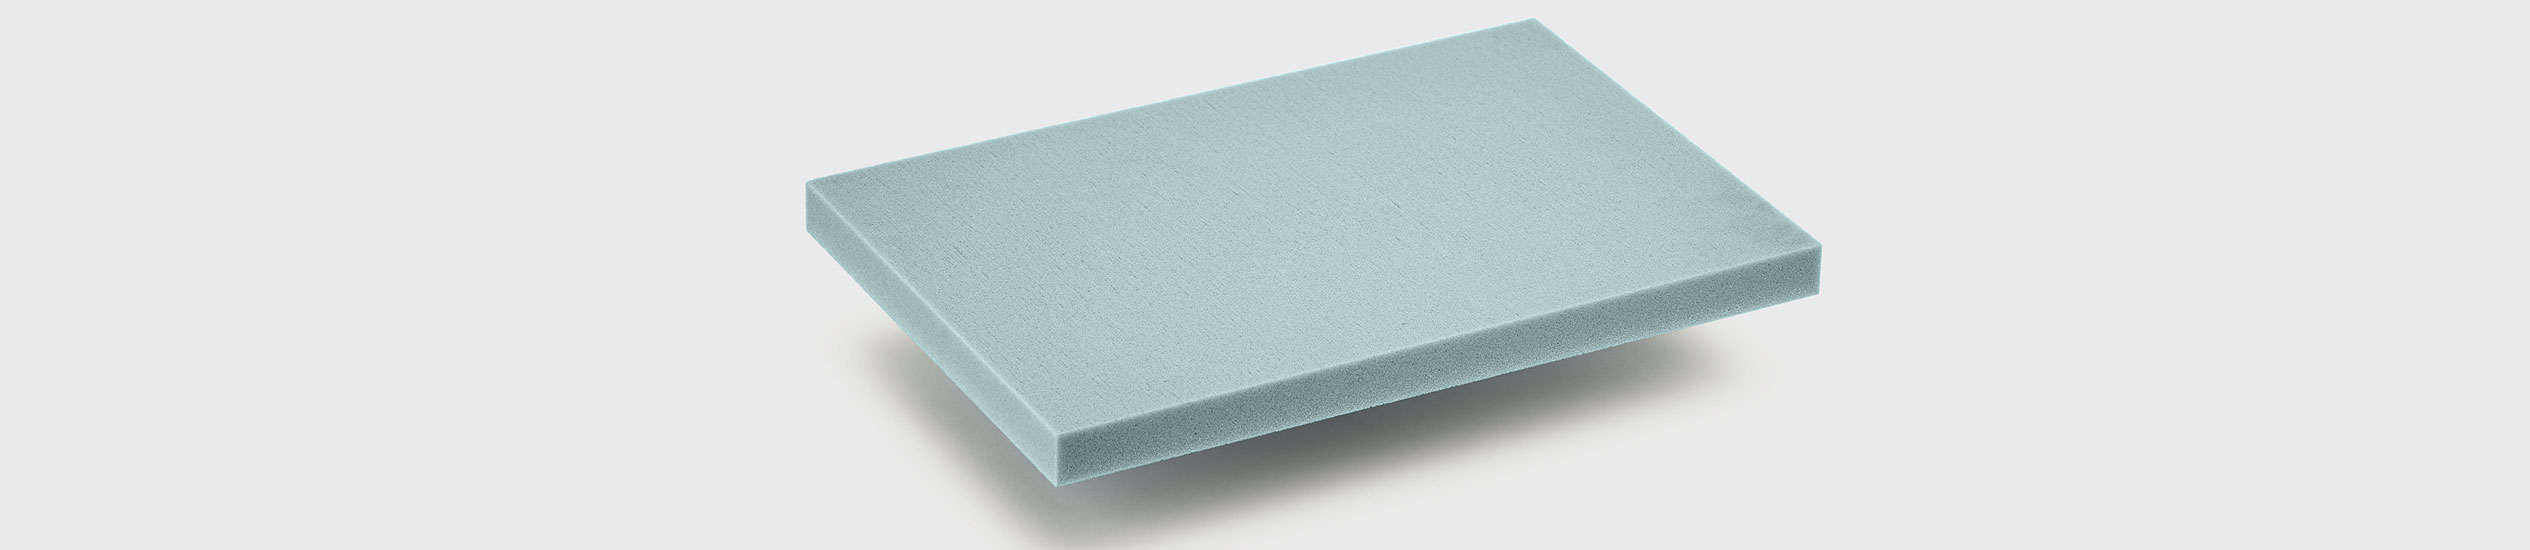 PVC foam offers optimal stiffness-to-weight-ratio, good impact strength, water resistance, thermal insulation, low resin absorption and high fatigue resistance